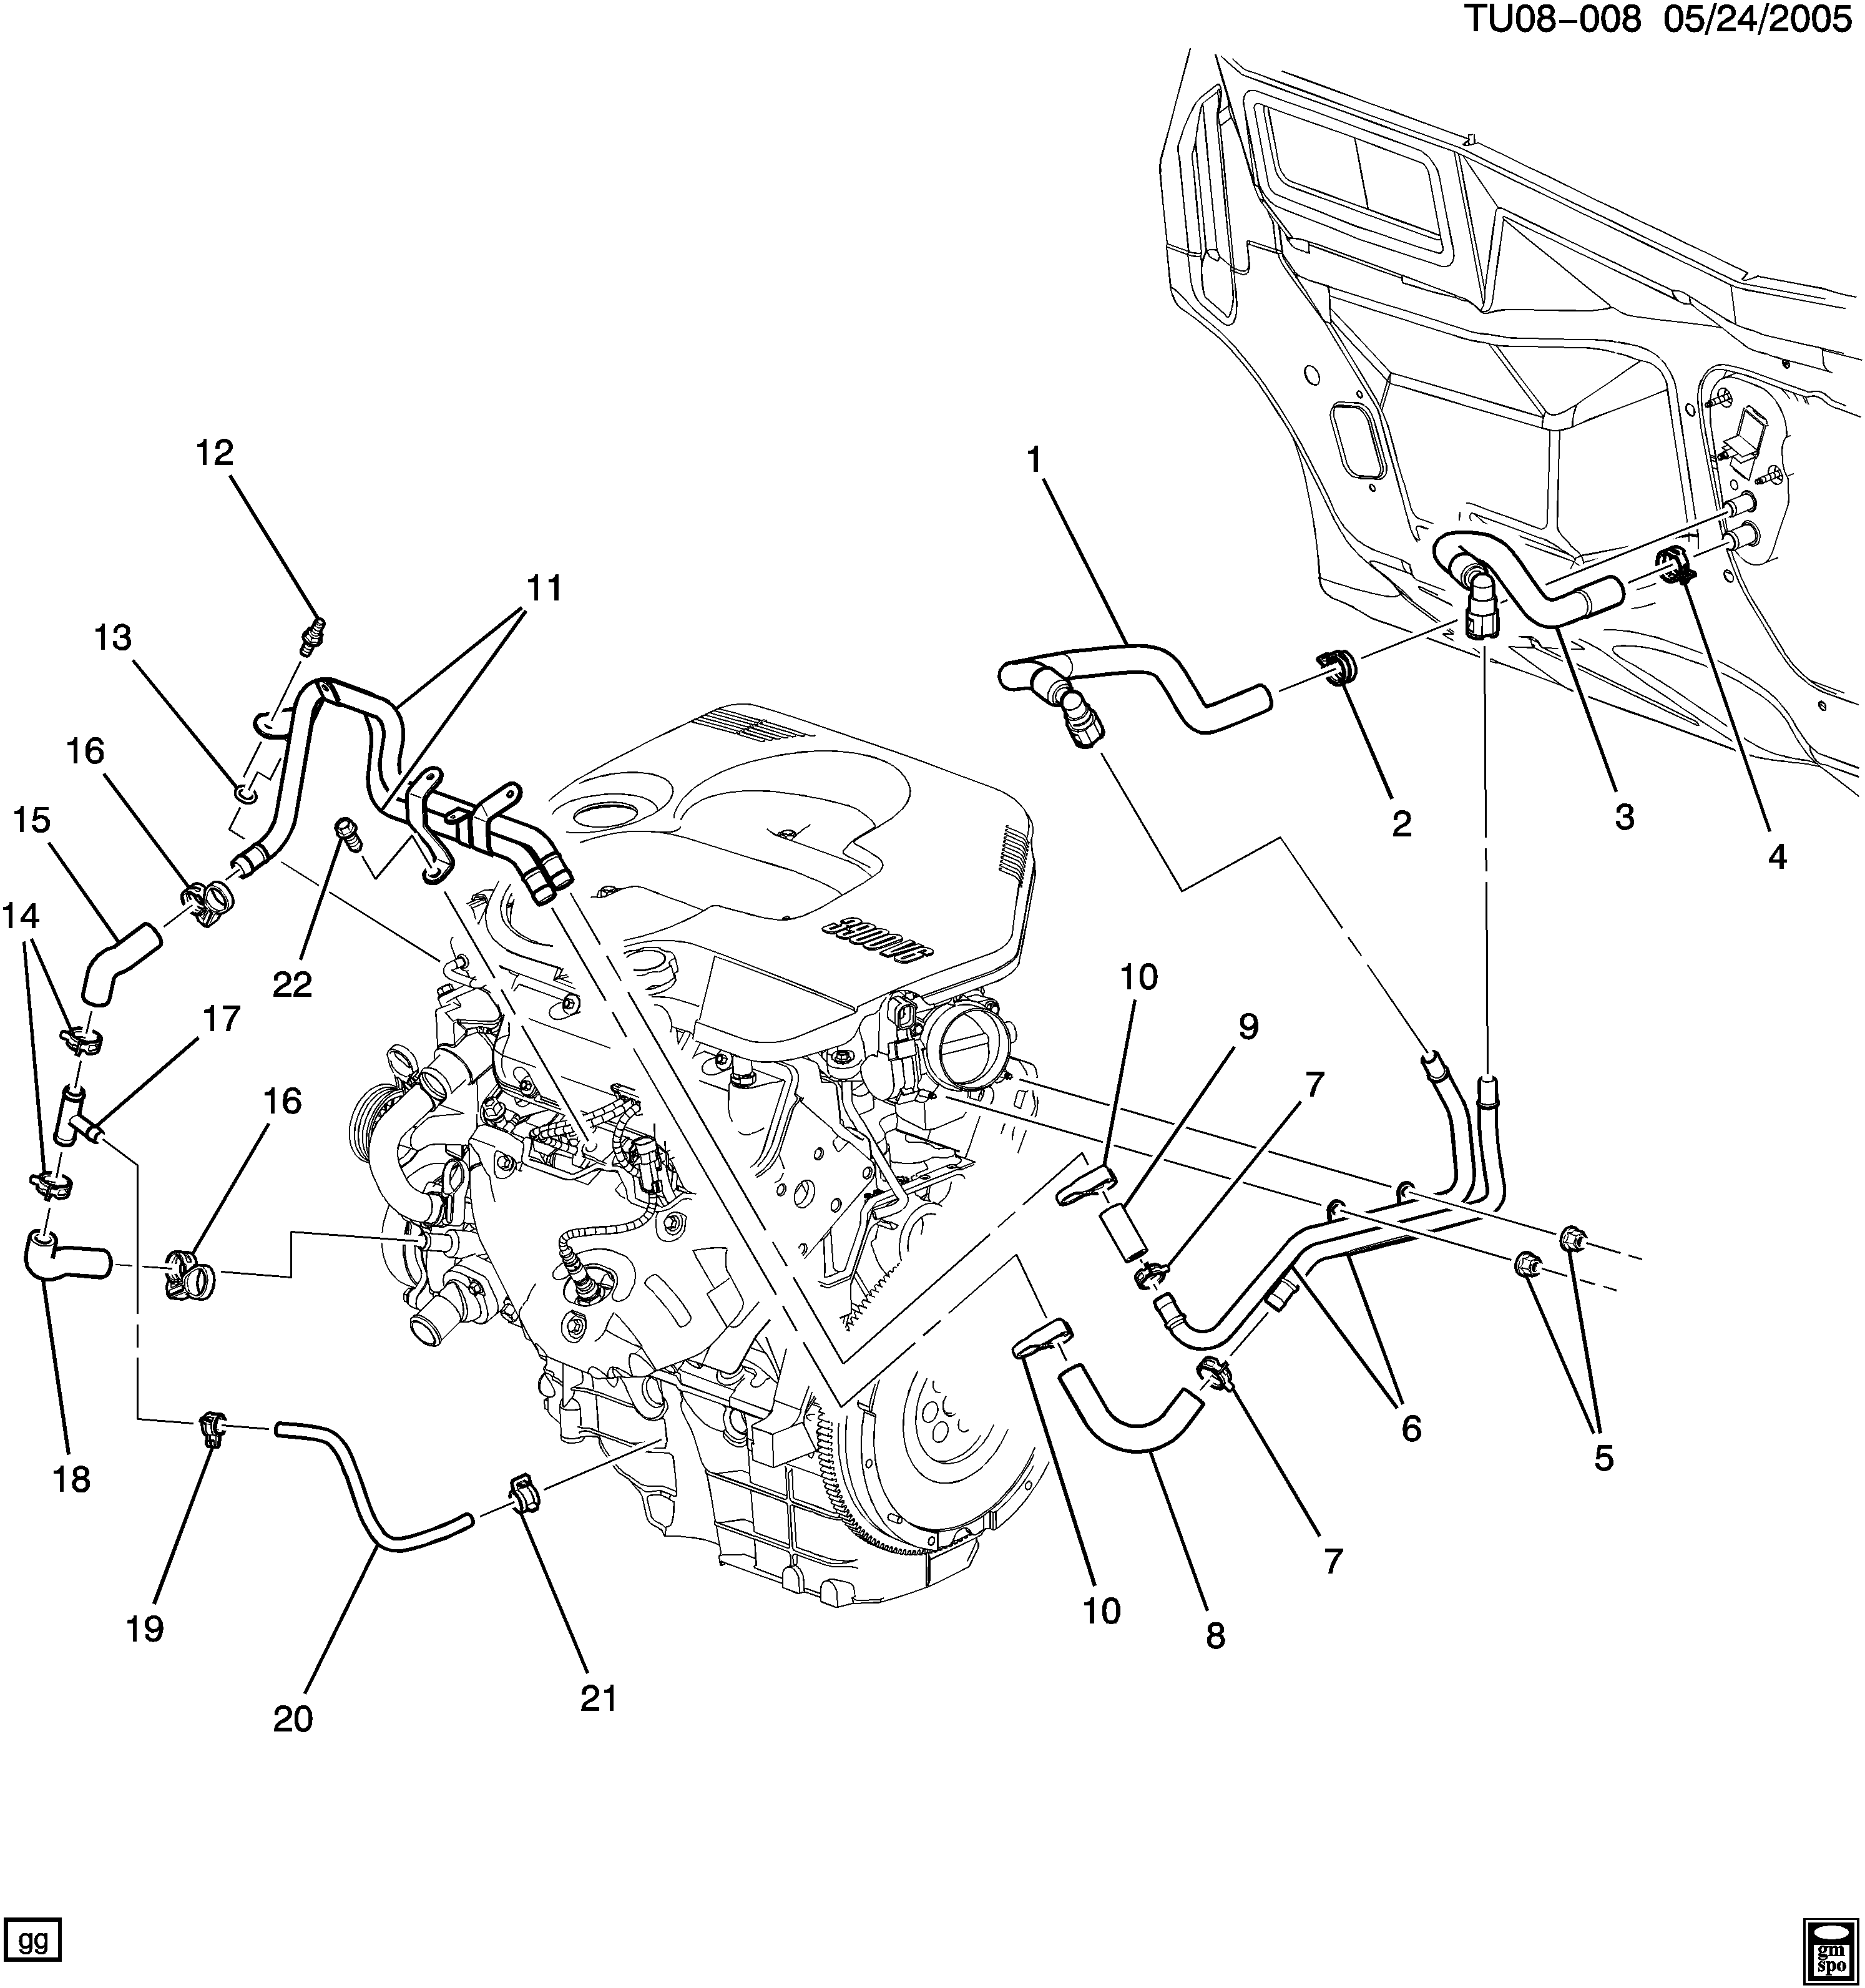 2007 Uplander Engine Diagram Jeep Liberty Seat Wiring Harness Begeboy Wiring Diagram Source